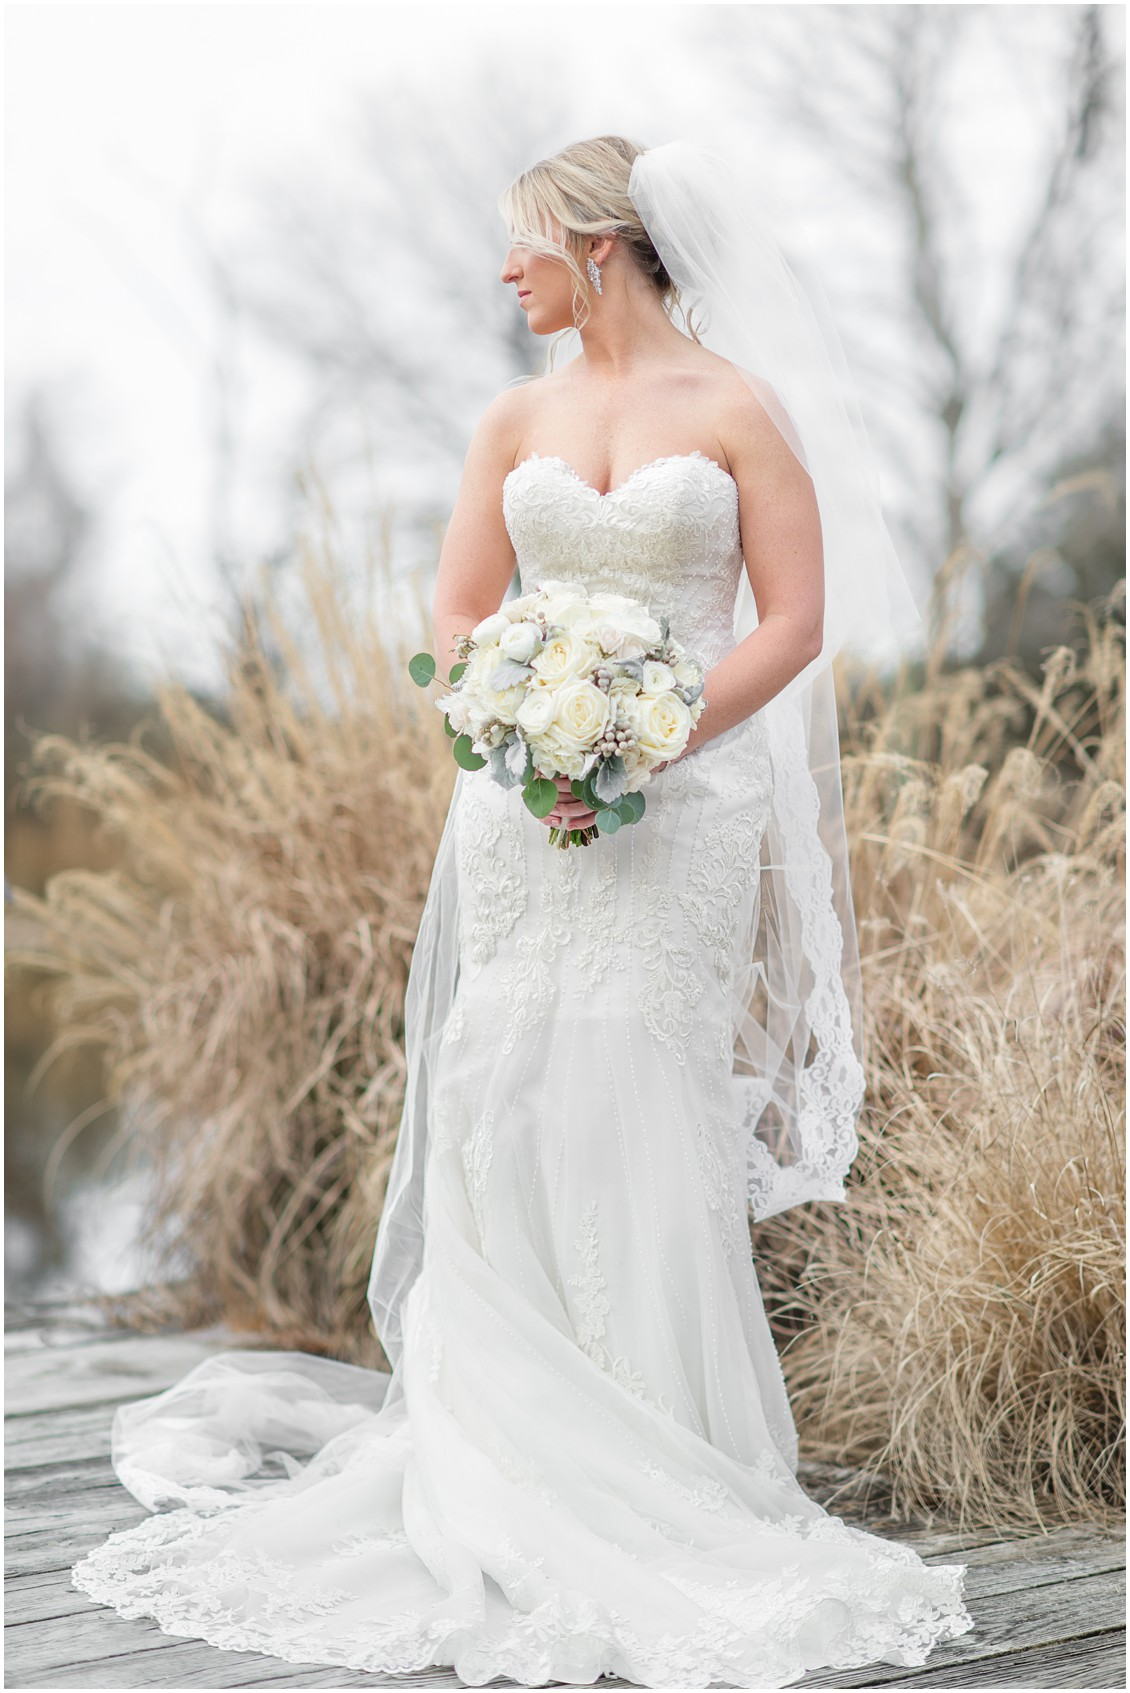 Bridal portrait winter wedding with marsh grass background| My Eastern Shore Wedding | Karena Dixon | Monteray Farms